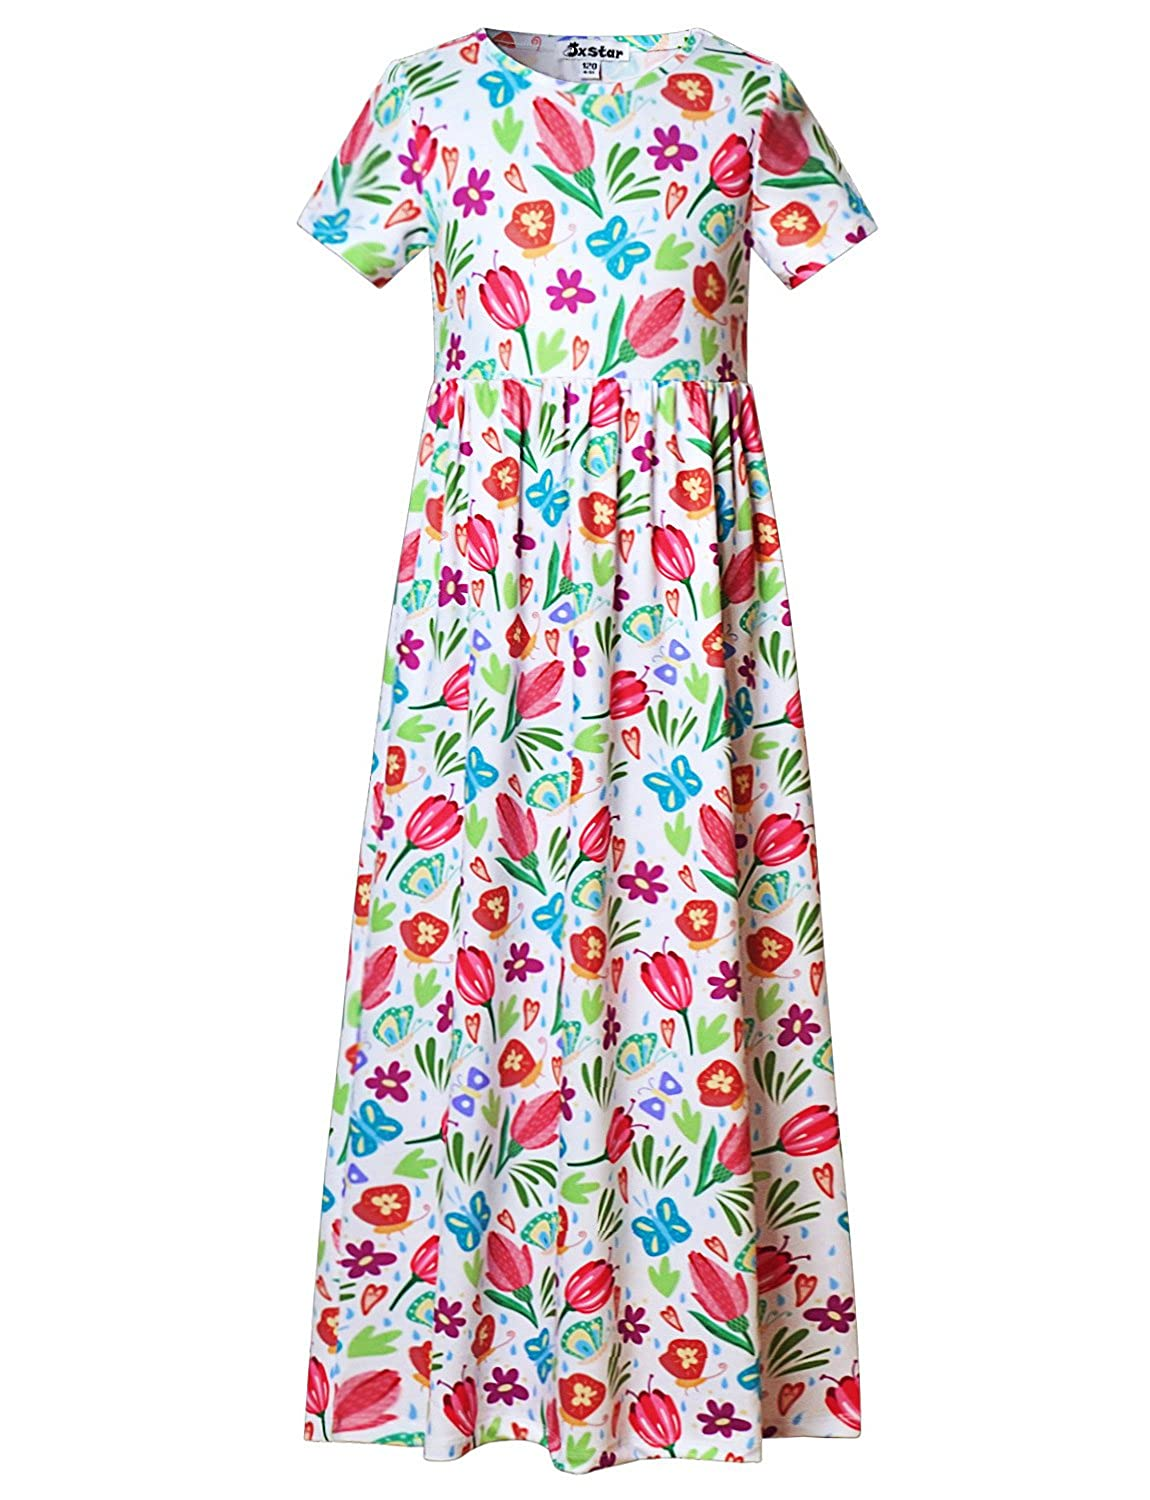 Girl Maxi Dress with Pockets Summer Floor Length Floral Sleeveless/Short Sleeve JXlongdress